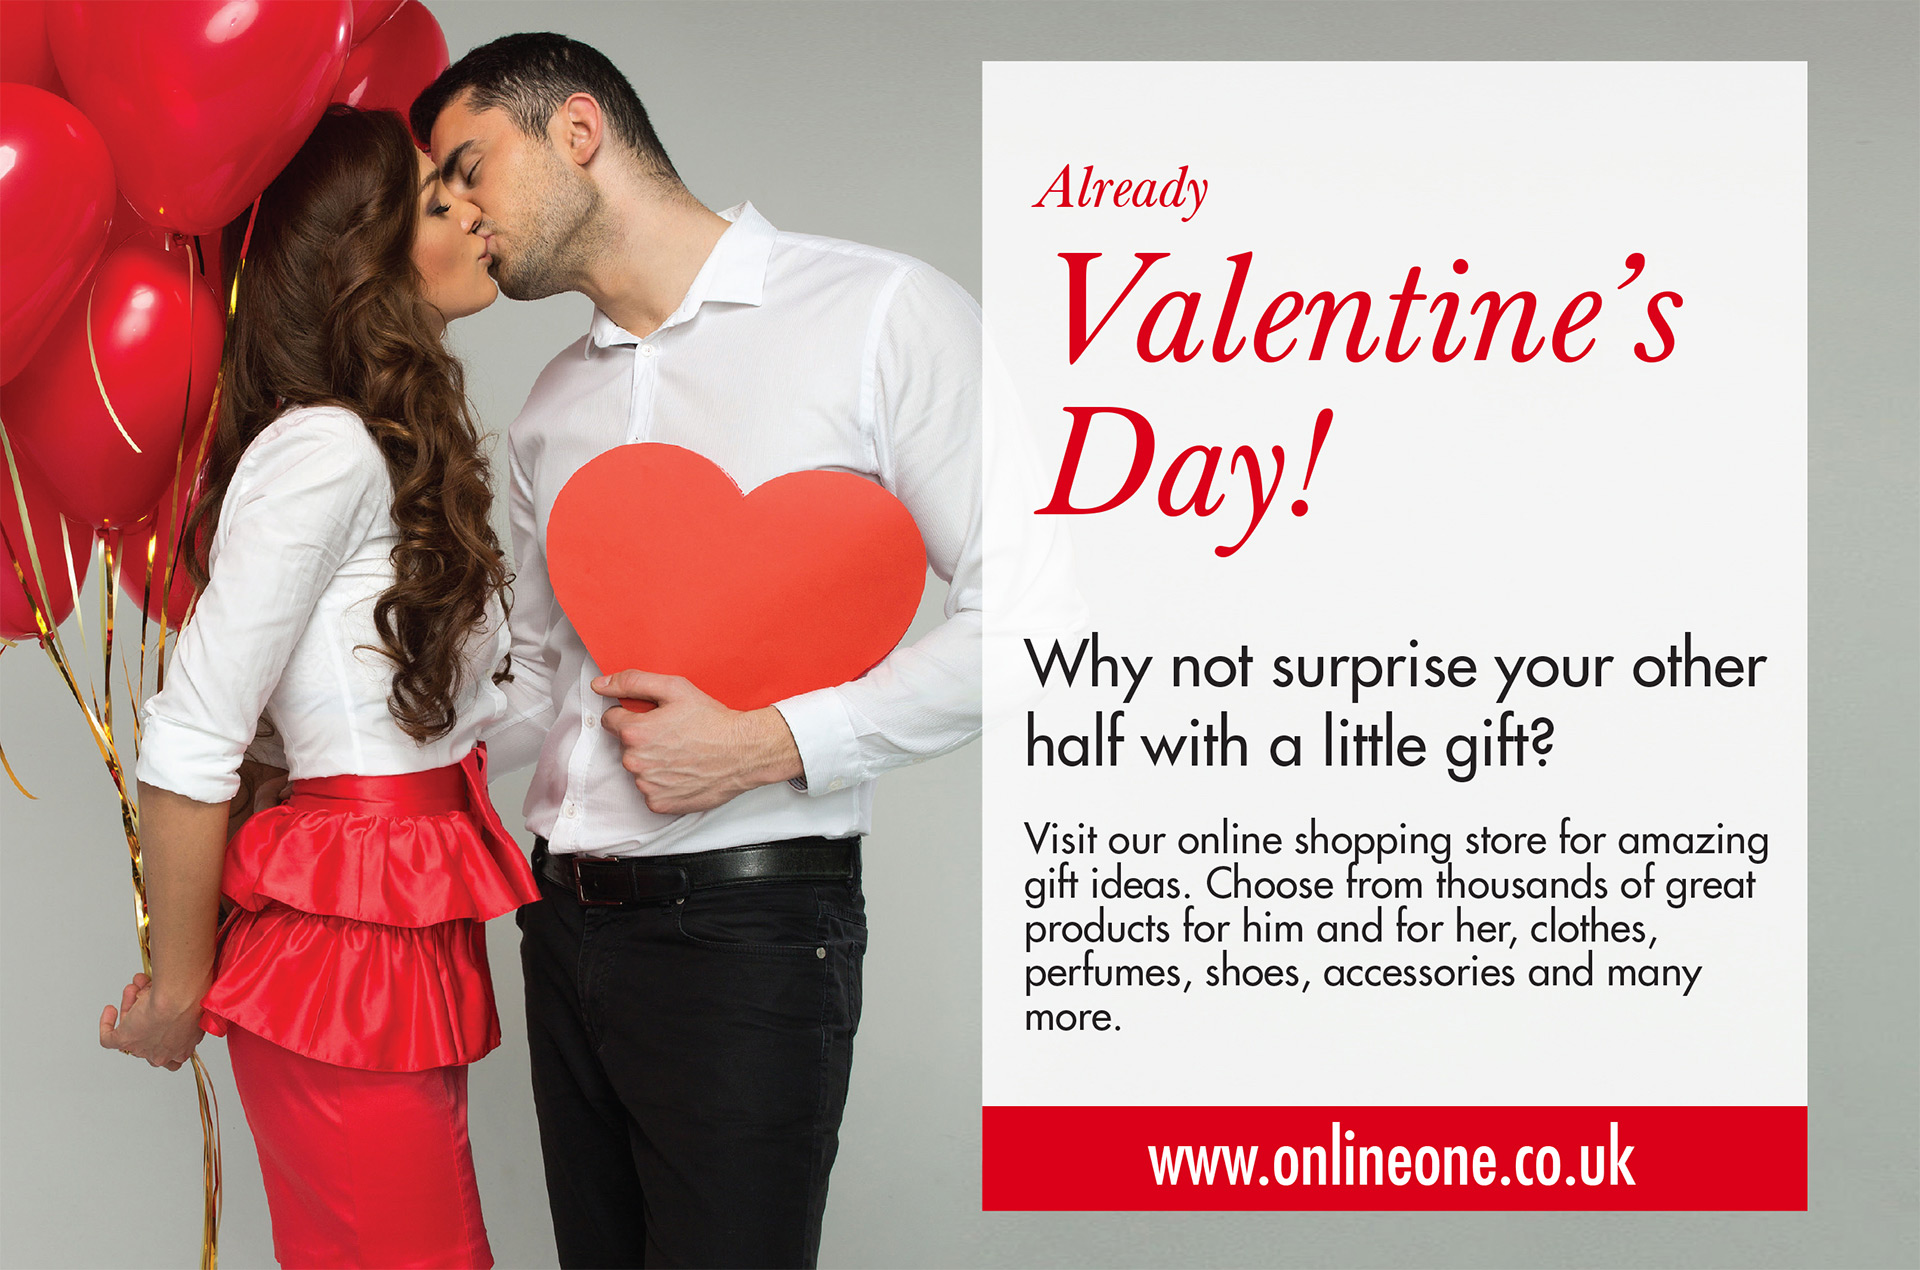 ONLINEONE-VALENTINES-DAY-FLYER-FINAL-1